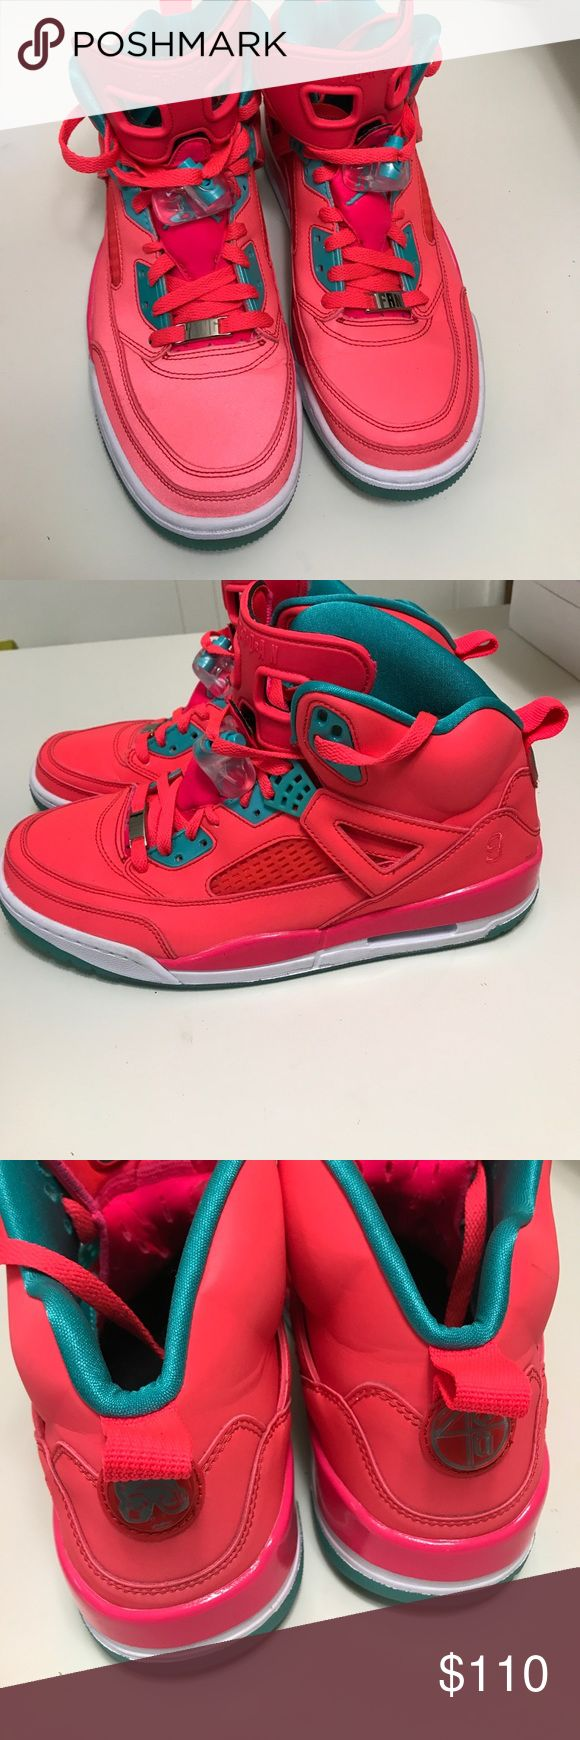 Jordan Spizike iD Tennis Shoes -10.5 Worn once. Like new. No box Nike Shoes Sneakers